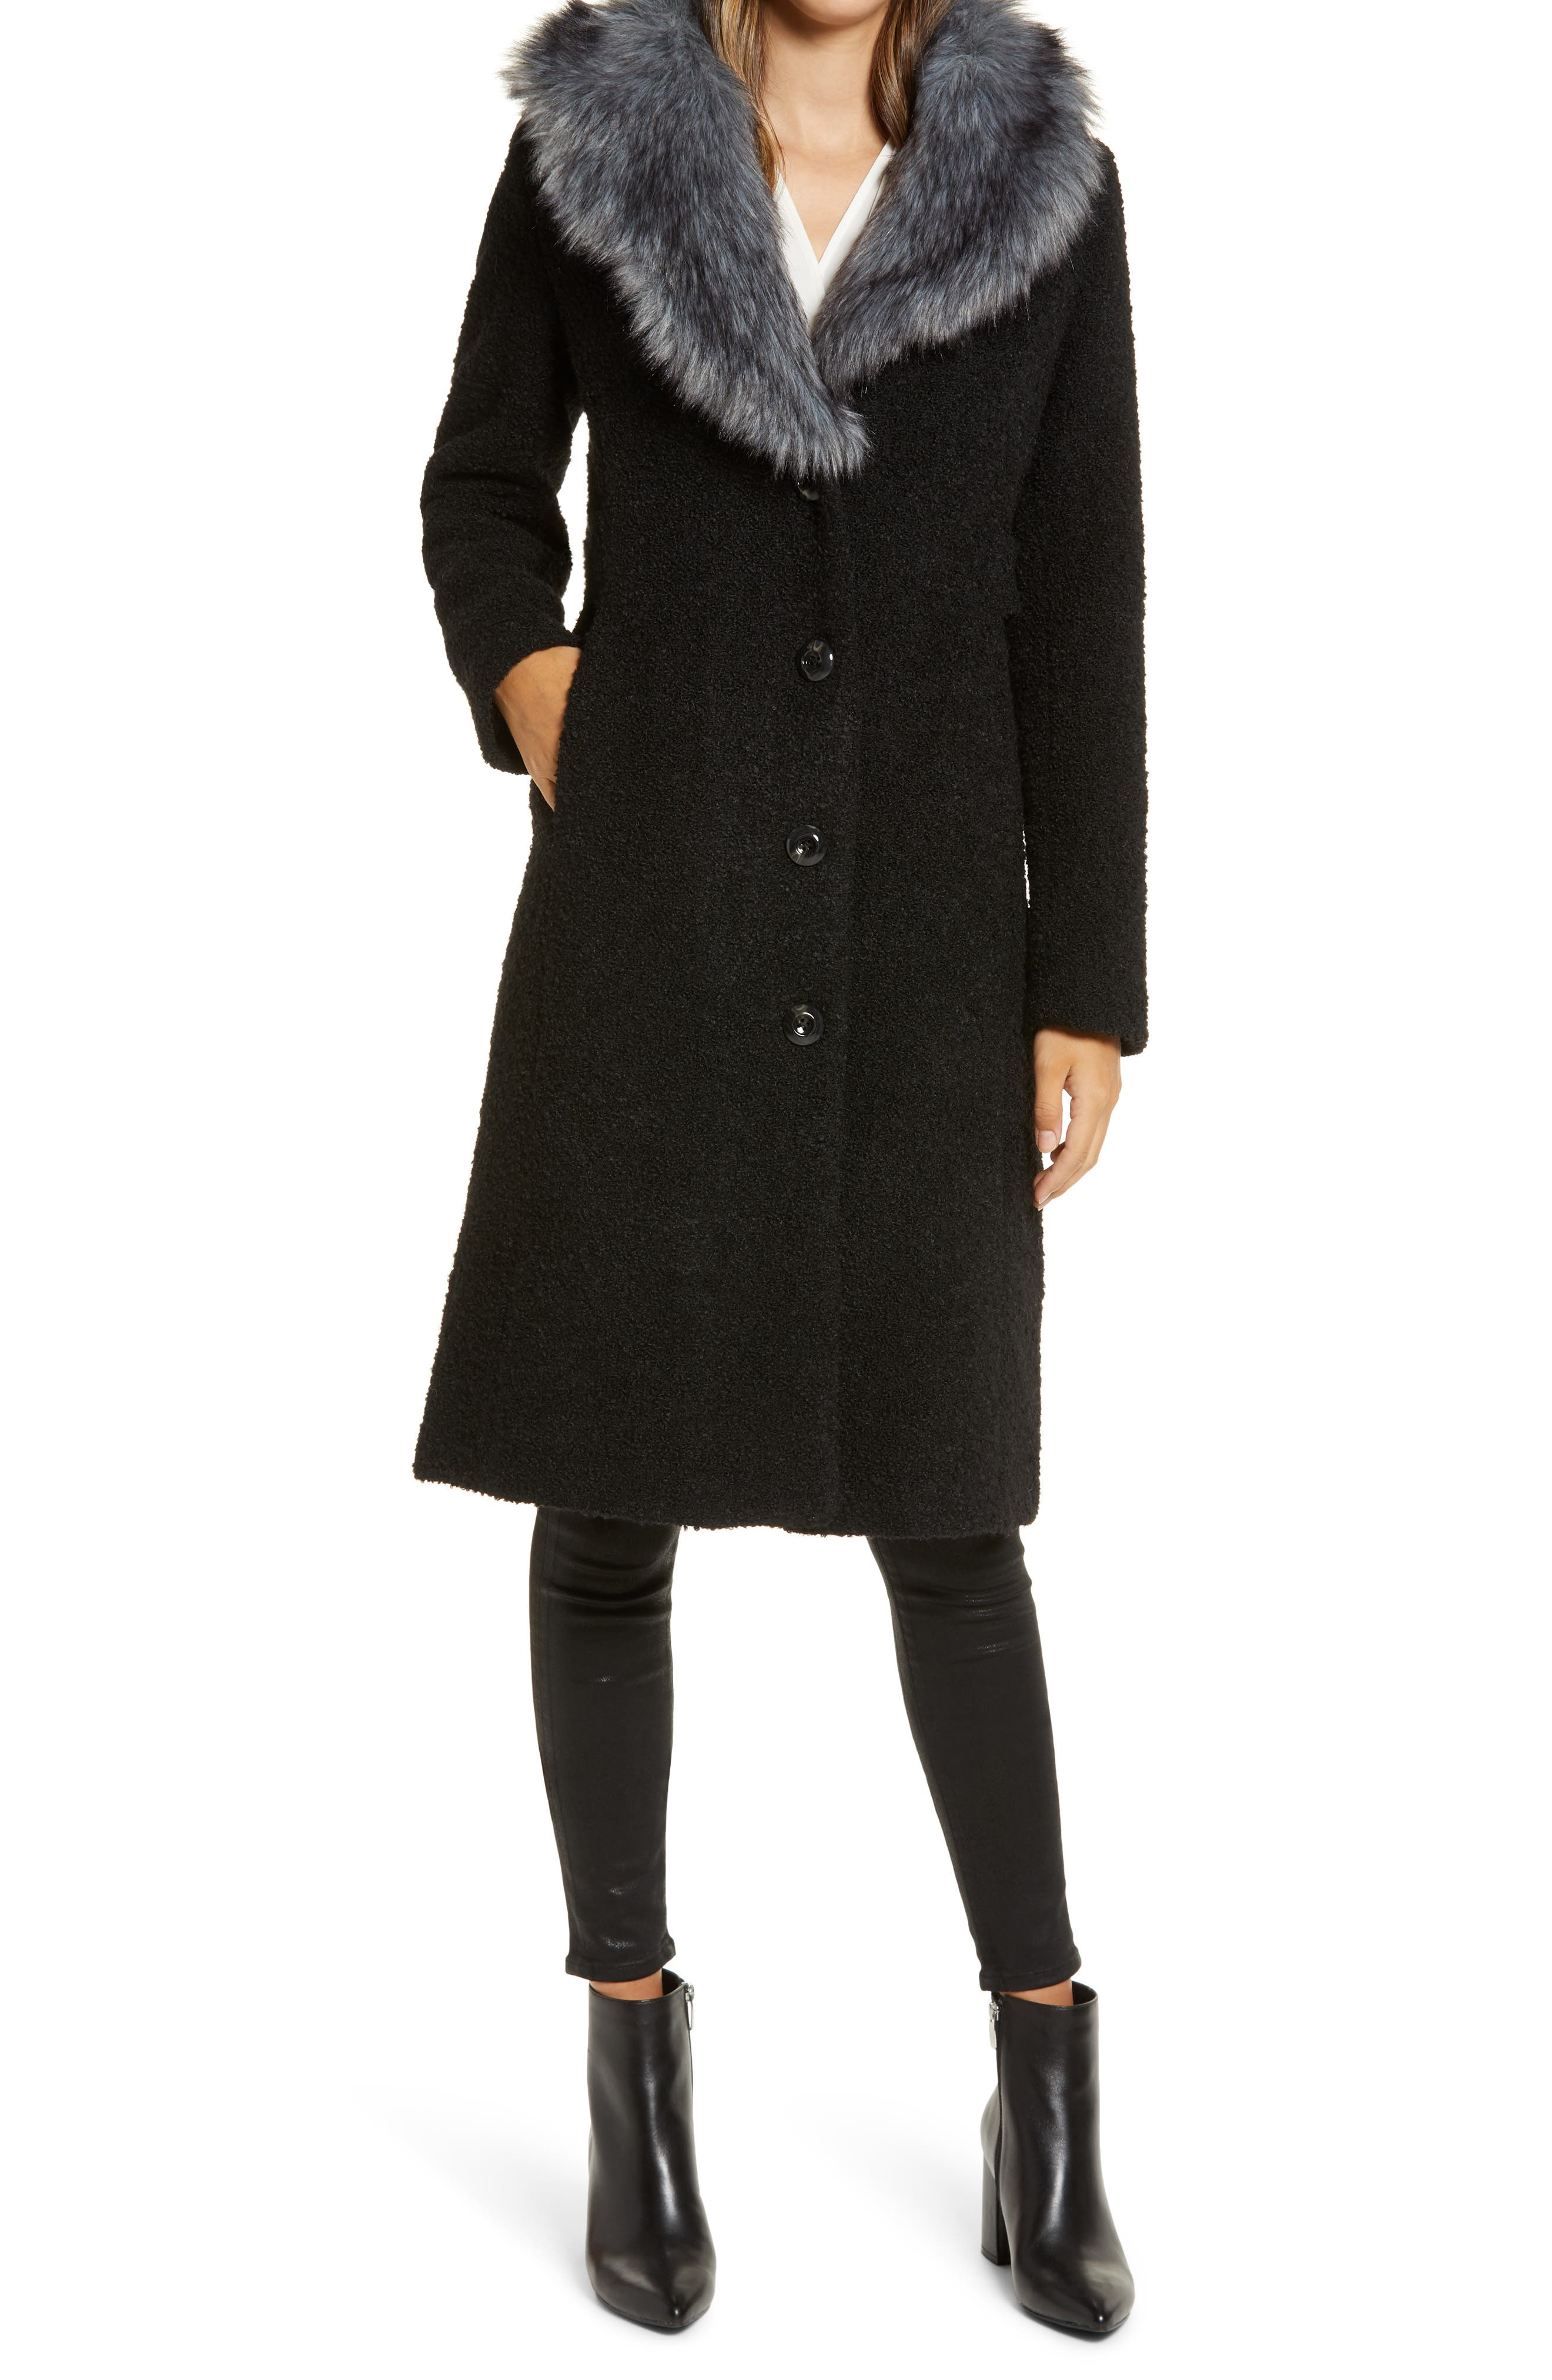 1940s Coats & Jackets Fashion History Womens Gallery Wool Blend Coat With Removable Faux Fur Collar $174.90 AT vintagedancer.com